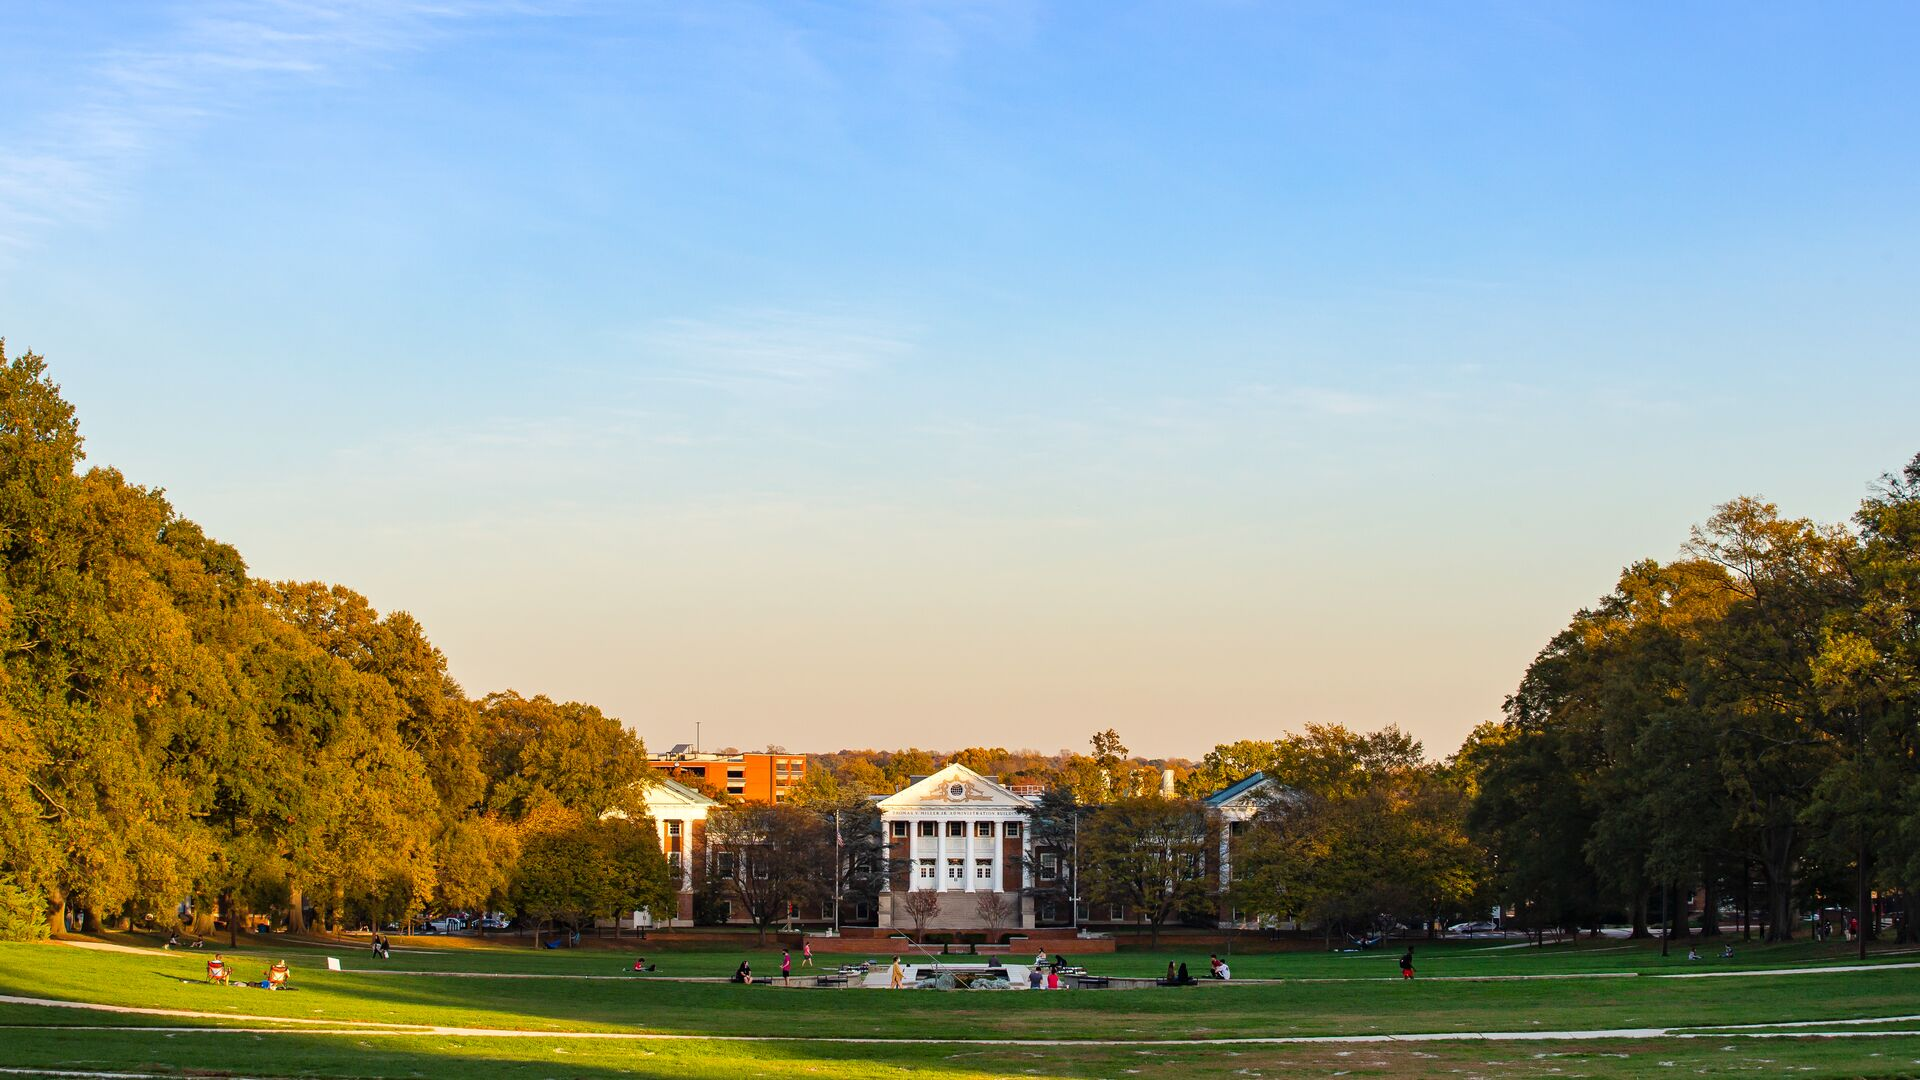 View of the Mall at dusk looking towards Miller Administration Building with students in masks.